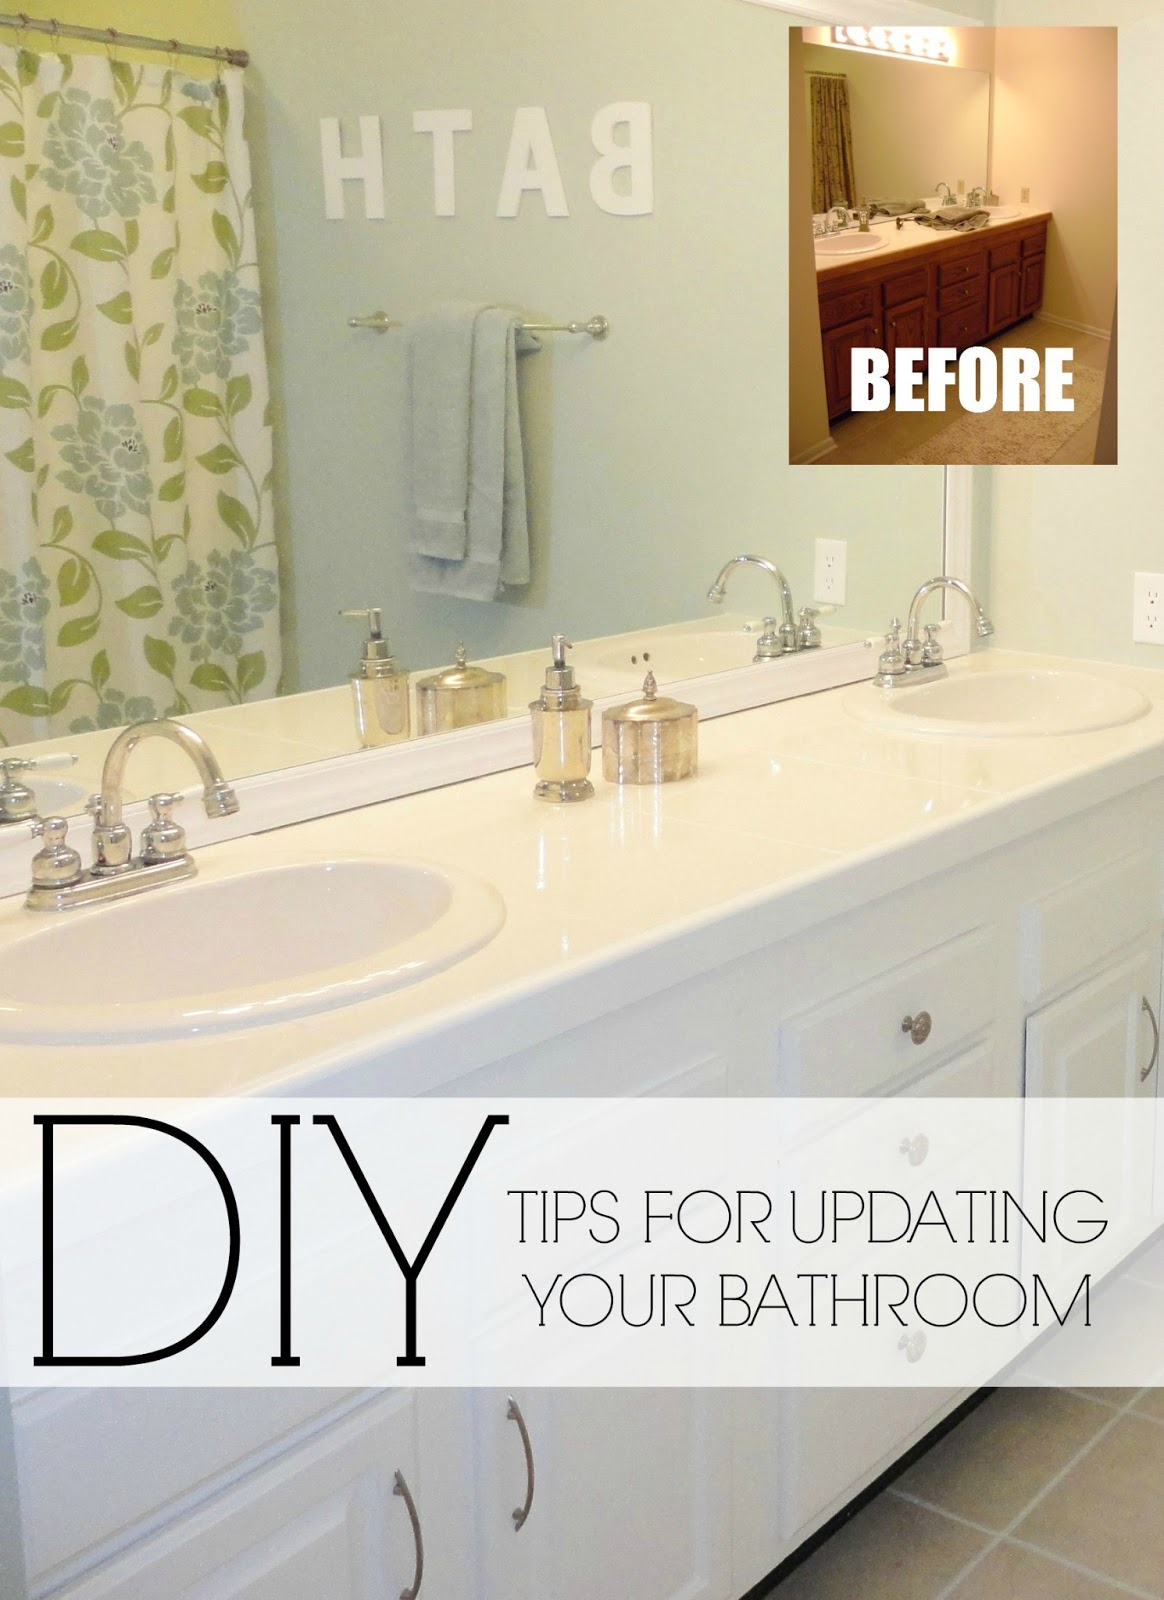 Interior Bathroom Diy Ideas livelovediy easy diy ideas for updating your bathroom